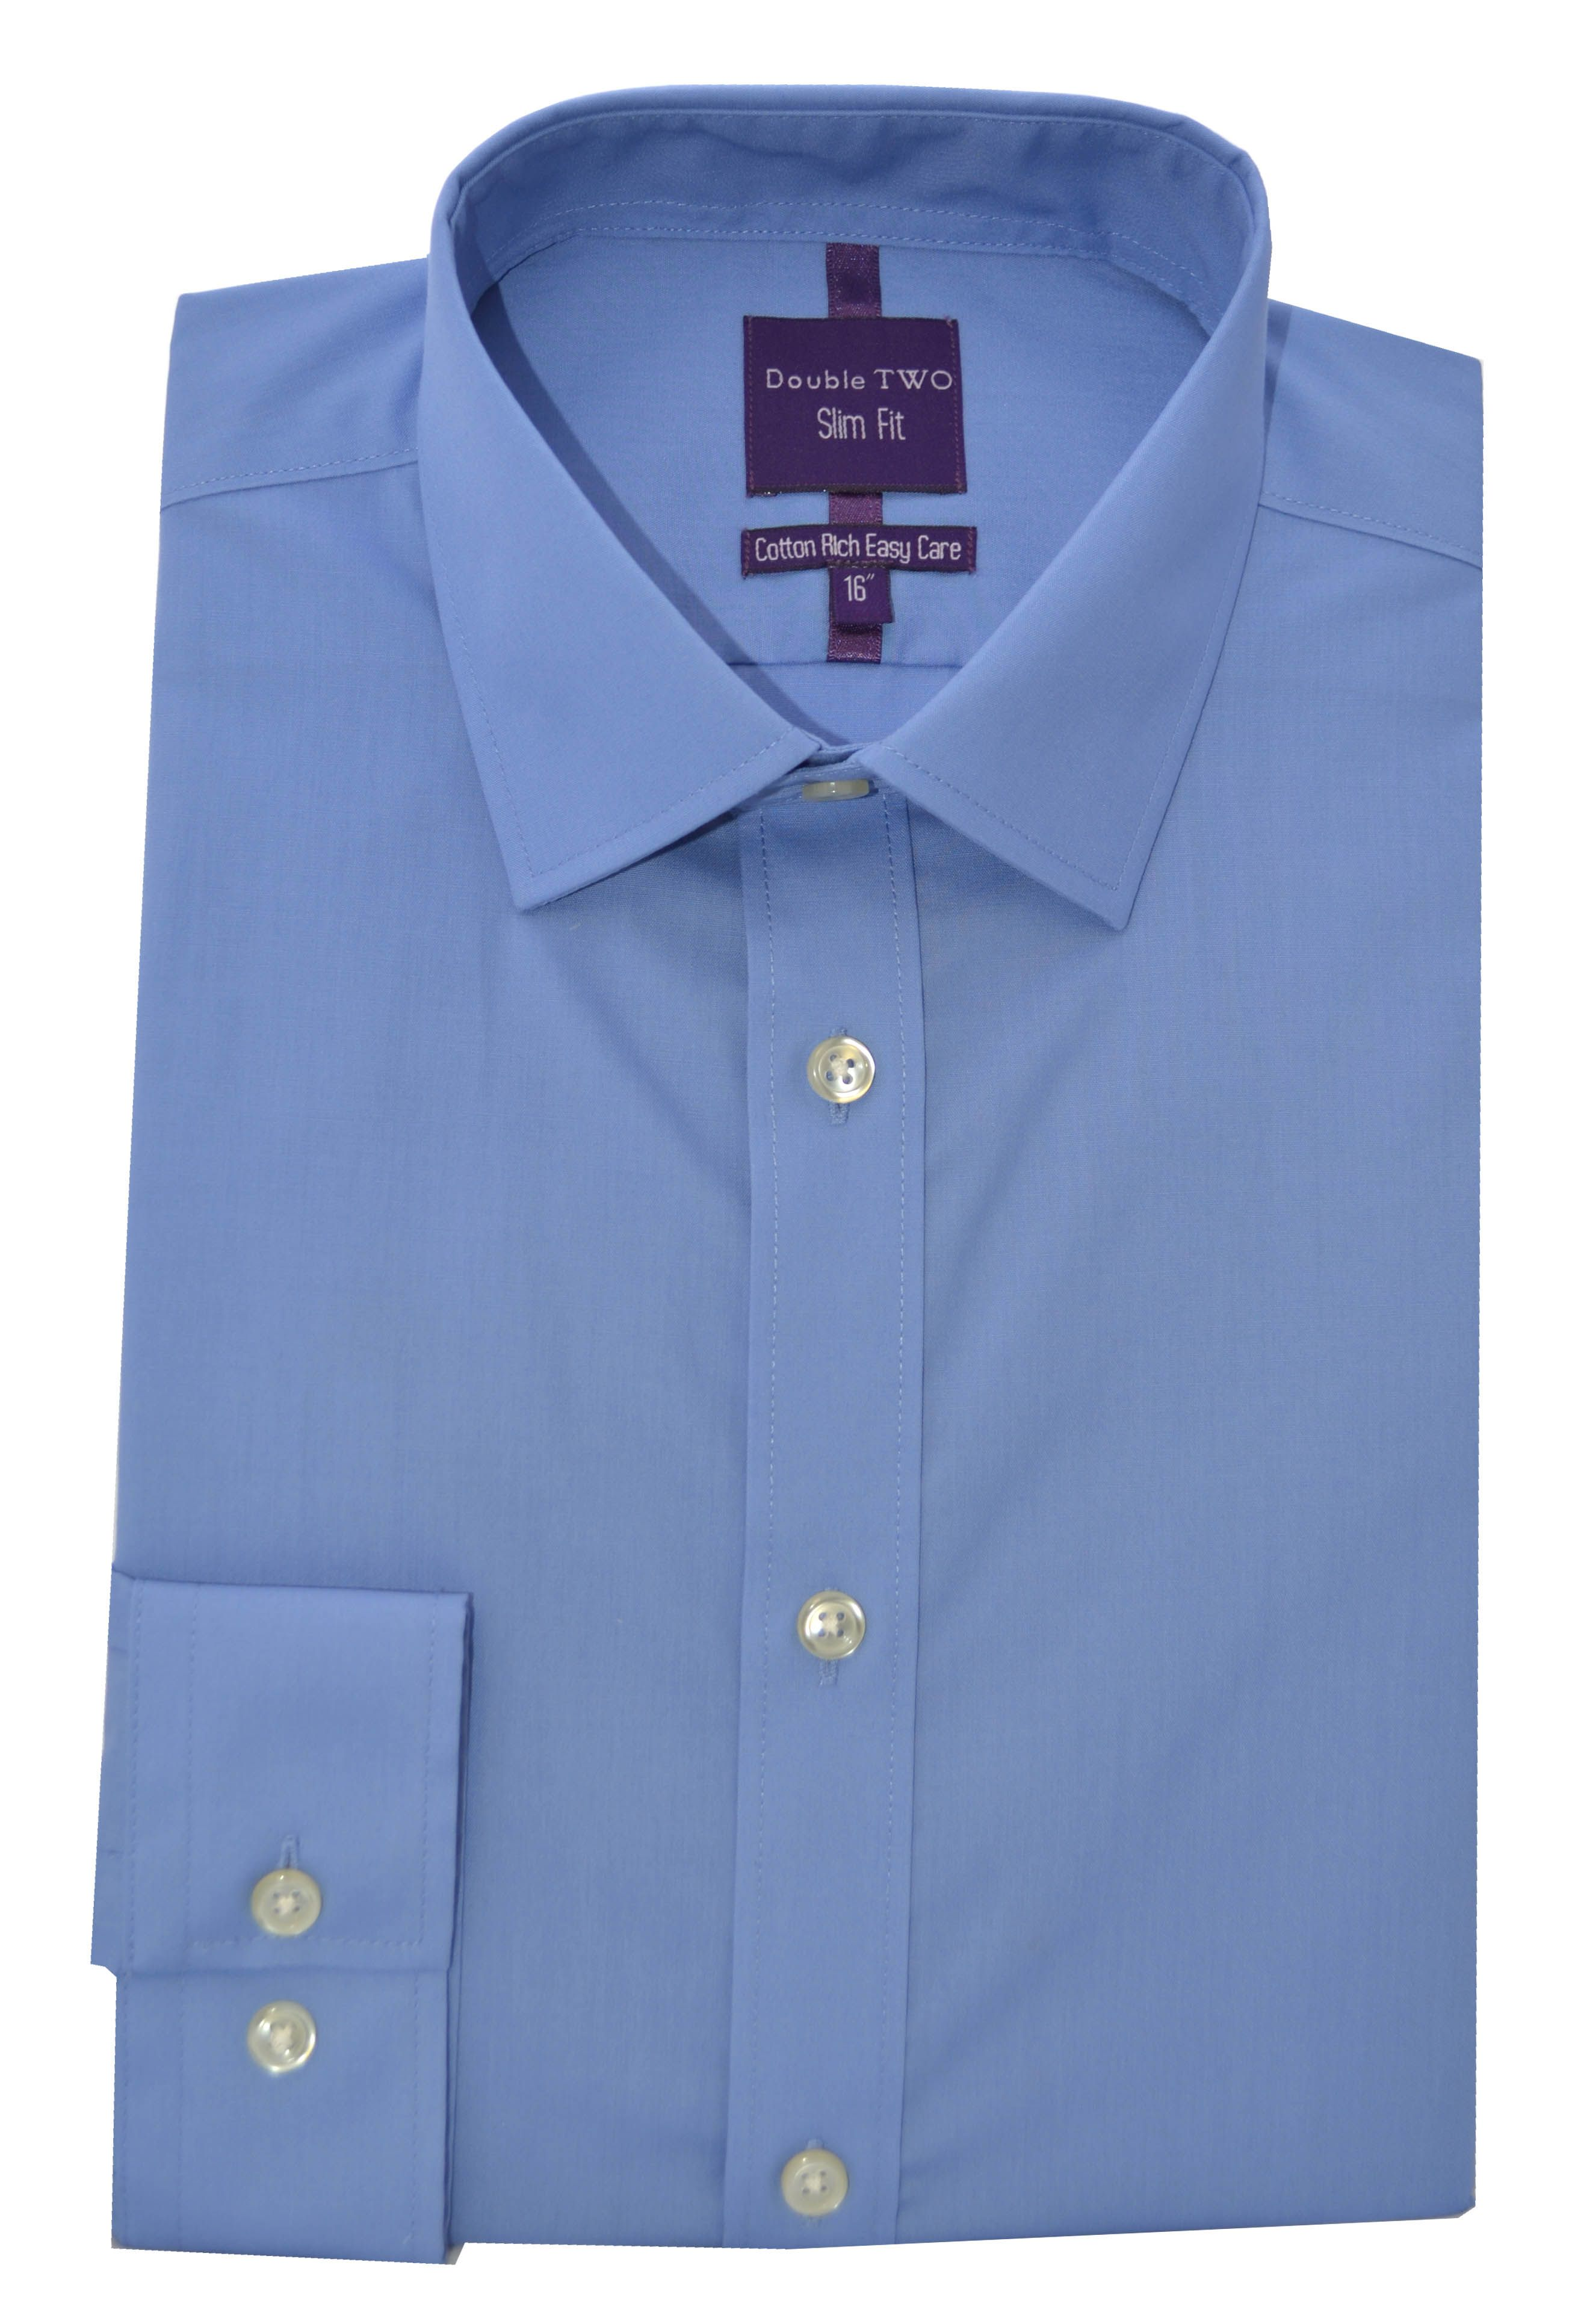 Double Two Men's Double TWO Slim Fit Formal Shirt, Blue